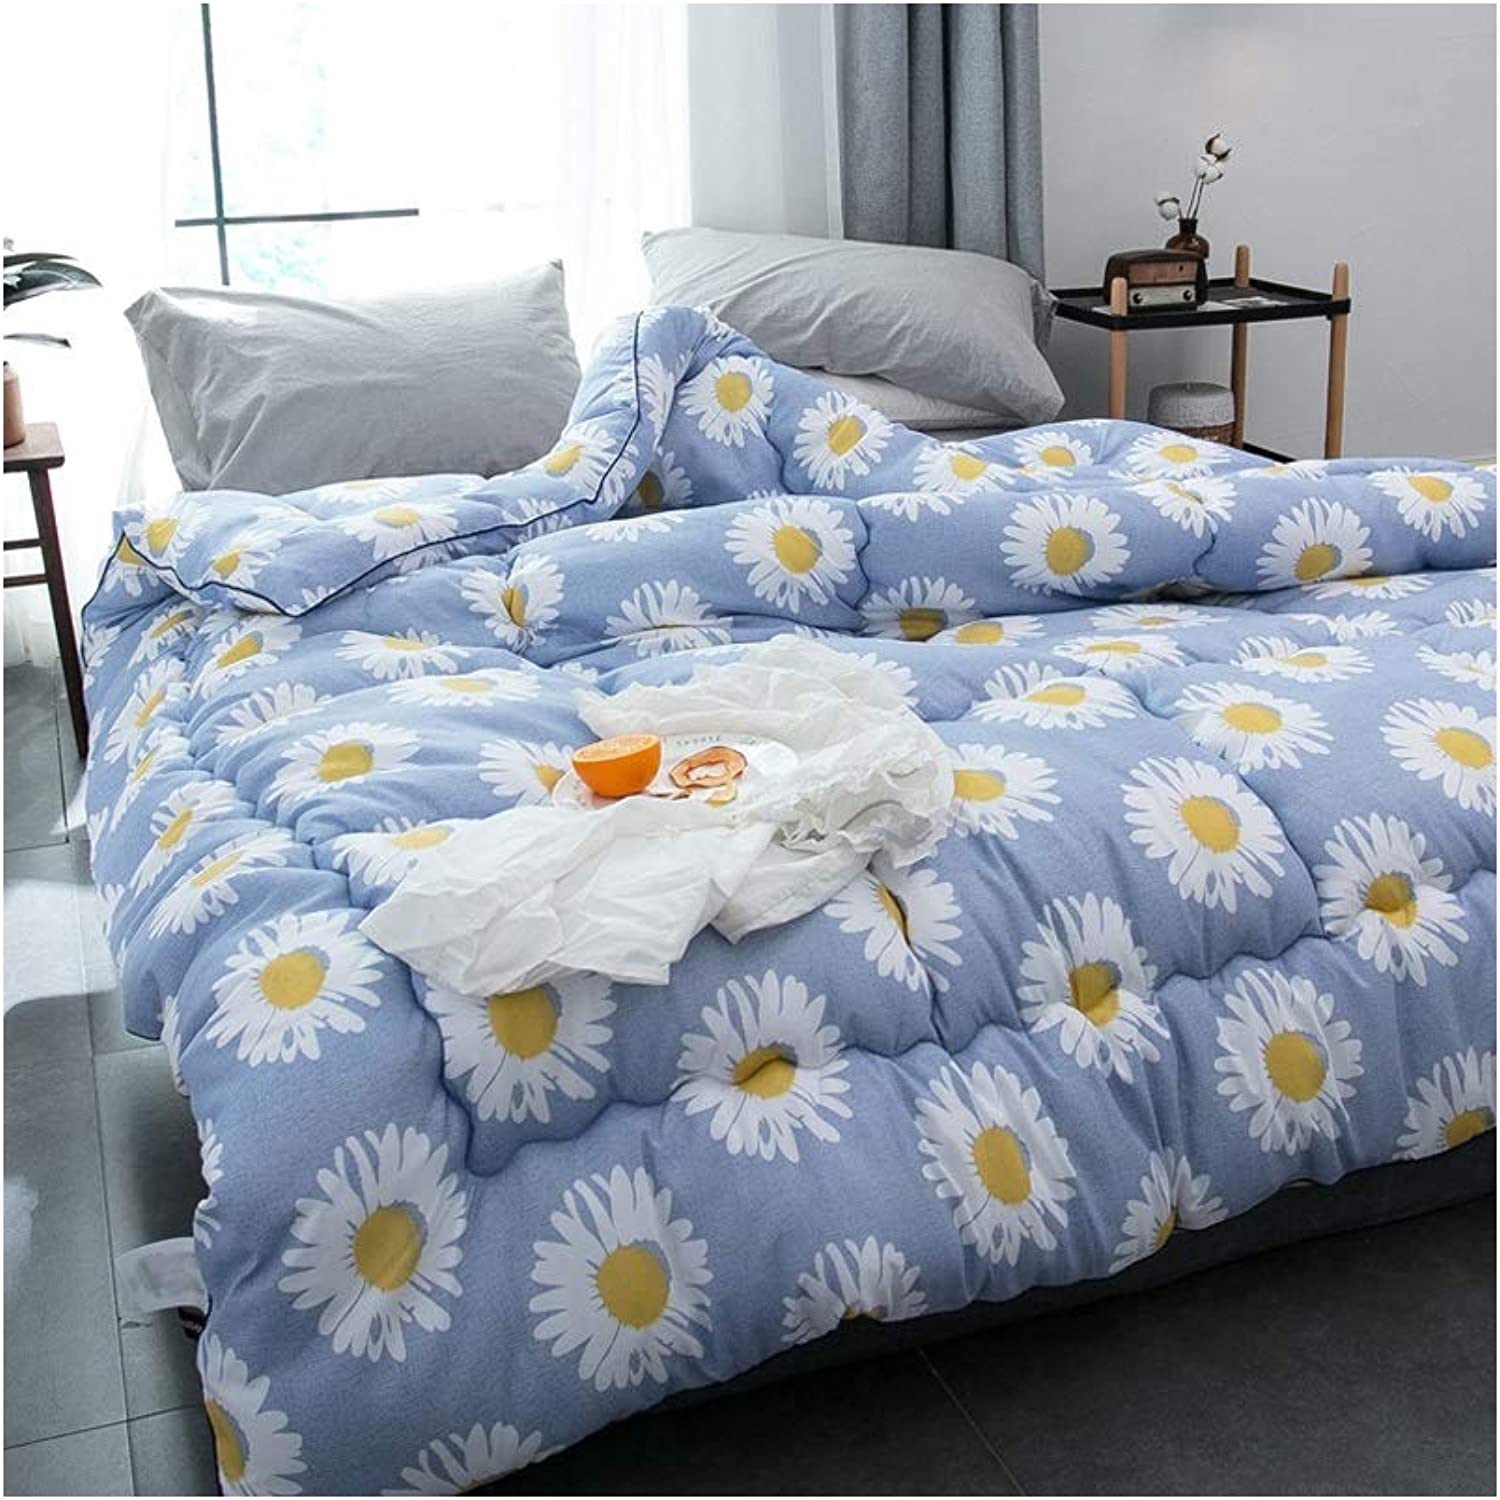 Warm Quilt Refinement Duvet Spring Autumn Winter Thickened Warm Single Double Bedding - bluee Comforter Family Student Dormitory - All Cotton Fabric Fashion Cozy Quilt Antiallergic Quilt